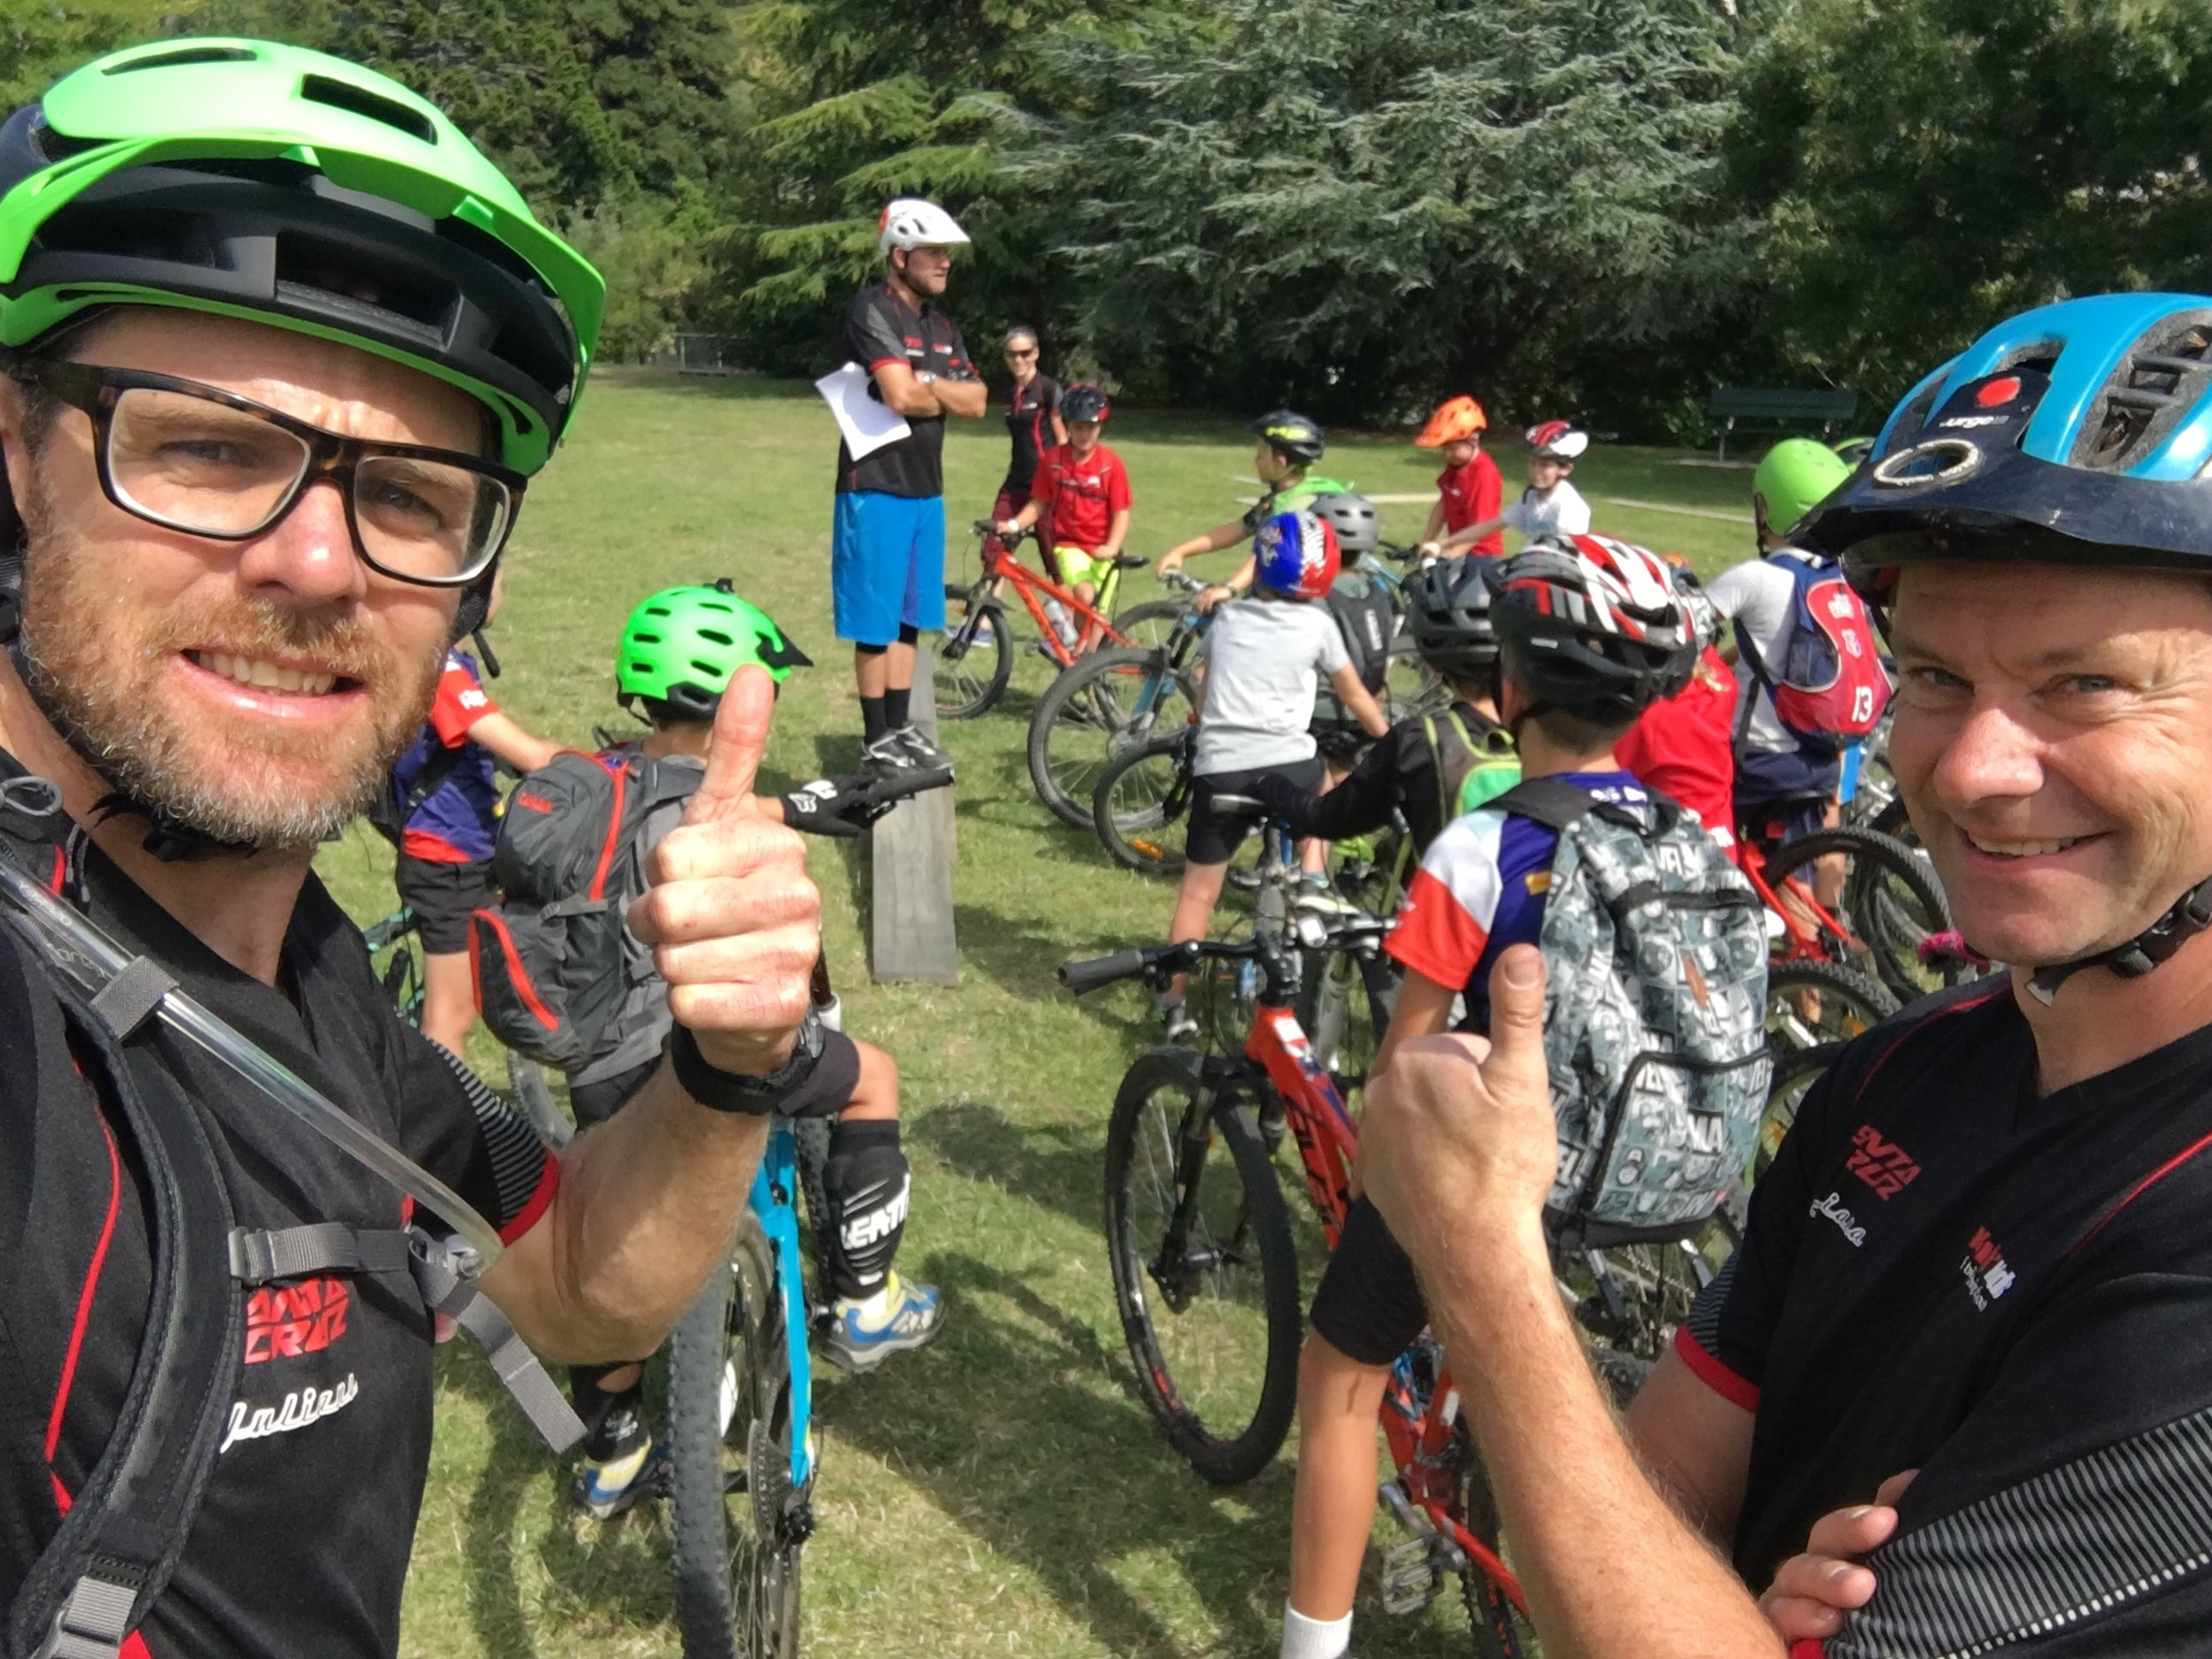 Coaches Damian Stones (mountain bike adventurer) and Mike Anderson (local bike shop owner) take a checkie selfie while Tay does roll call.